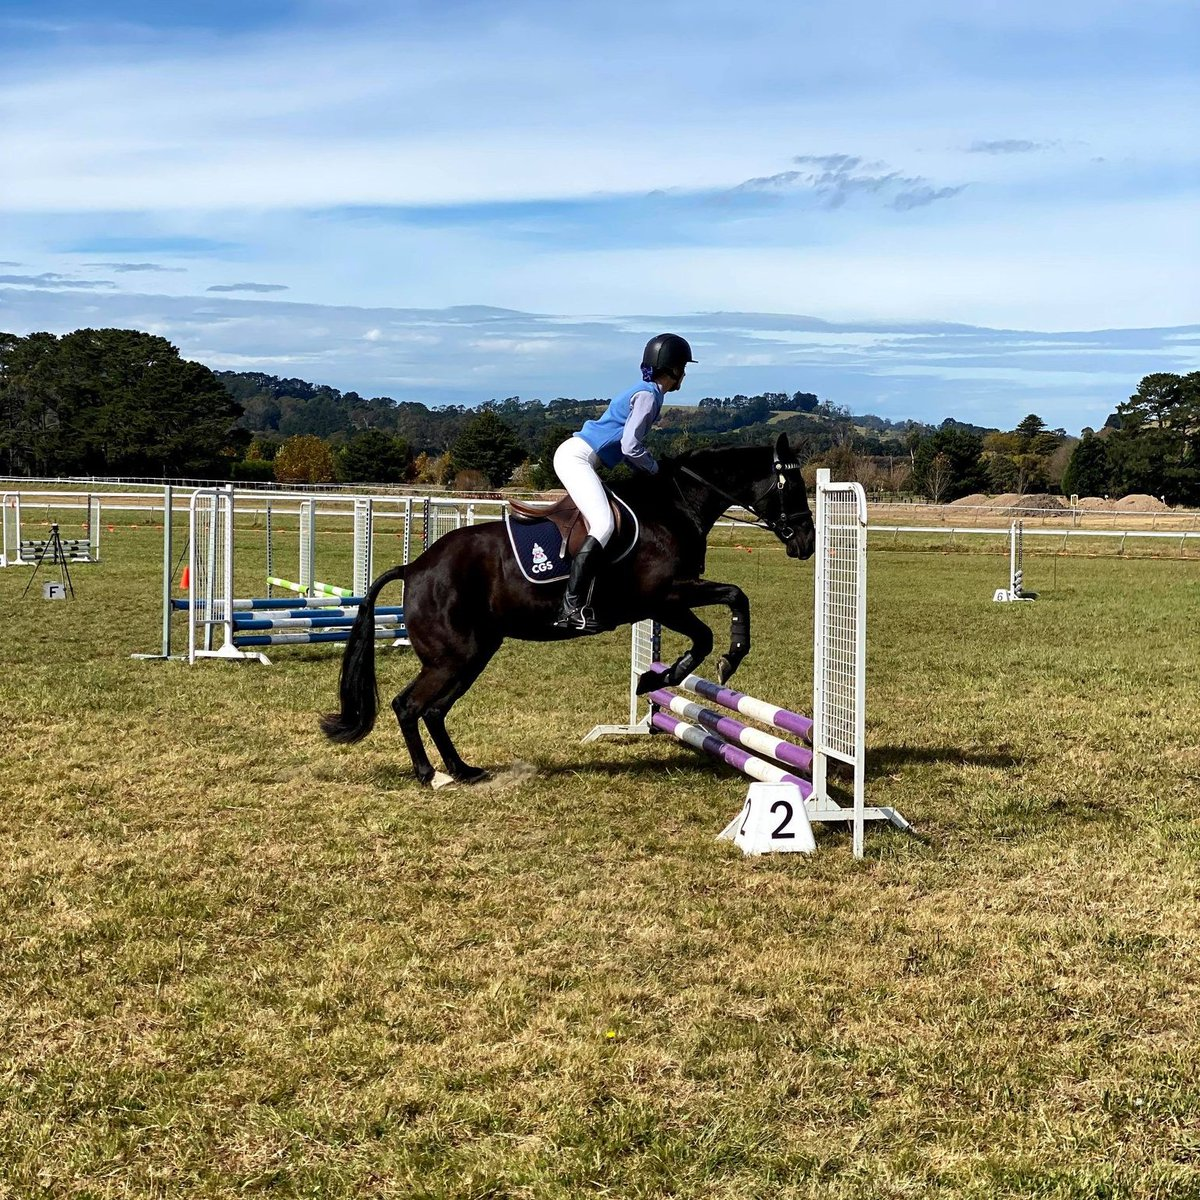 North West Equestrian Expo Coonabarabran was held earlier this month. Congrats to both CGS Seniors for their fantastic result:  Paloma 5th in Combined Training Suki 9th in One Day Event Suki 1st Restricted height show jumping Suki 4th Novice b Dressage Suki 5th Novice c Dressage